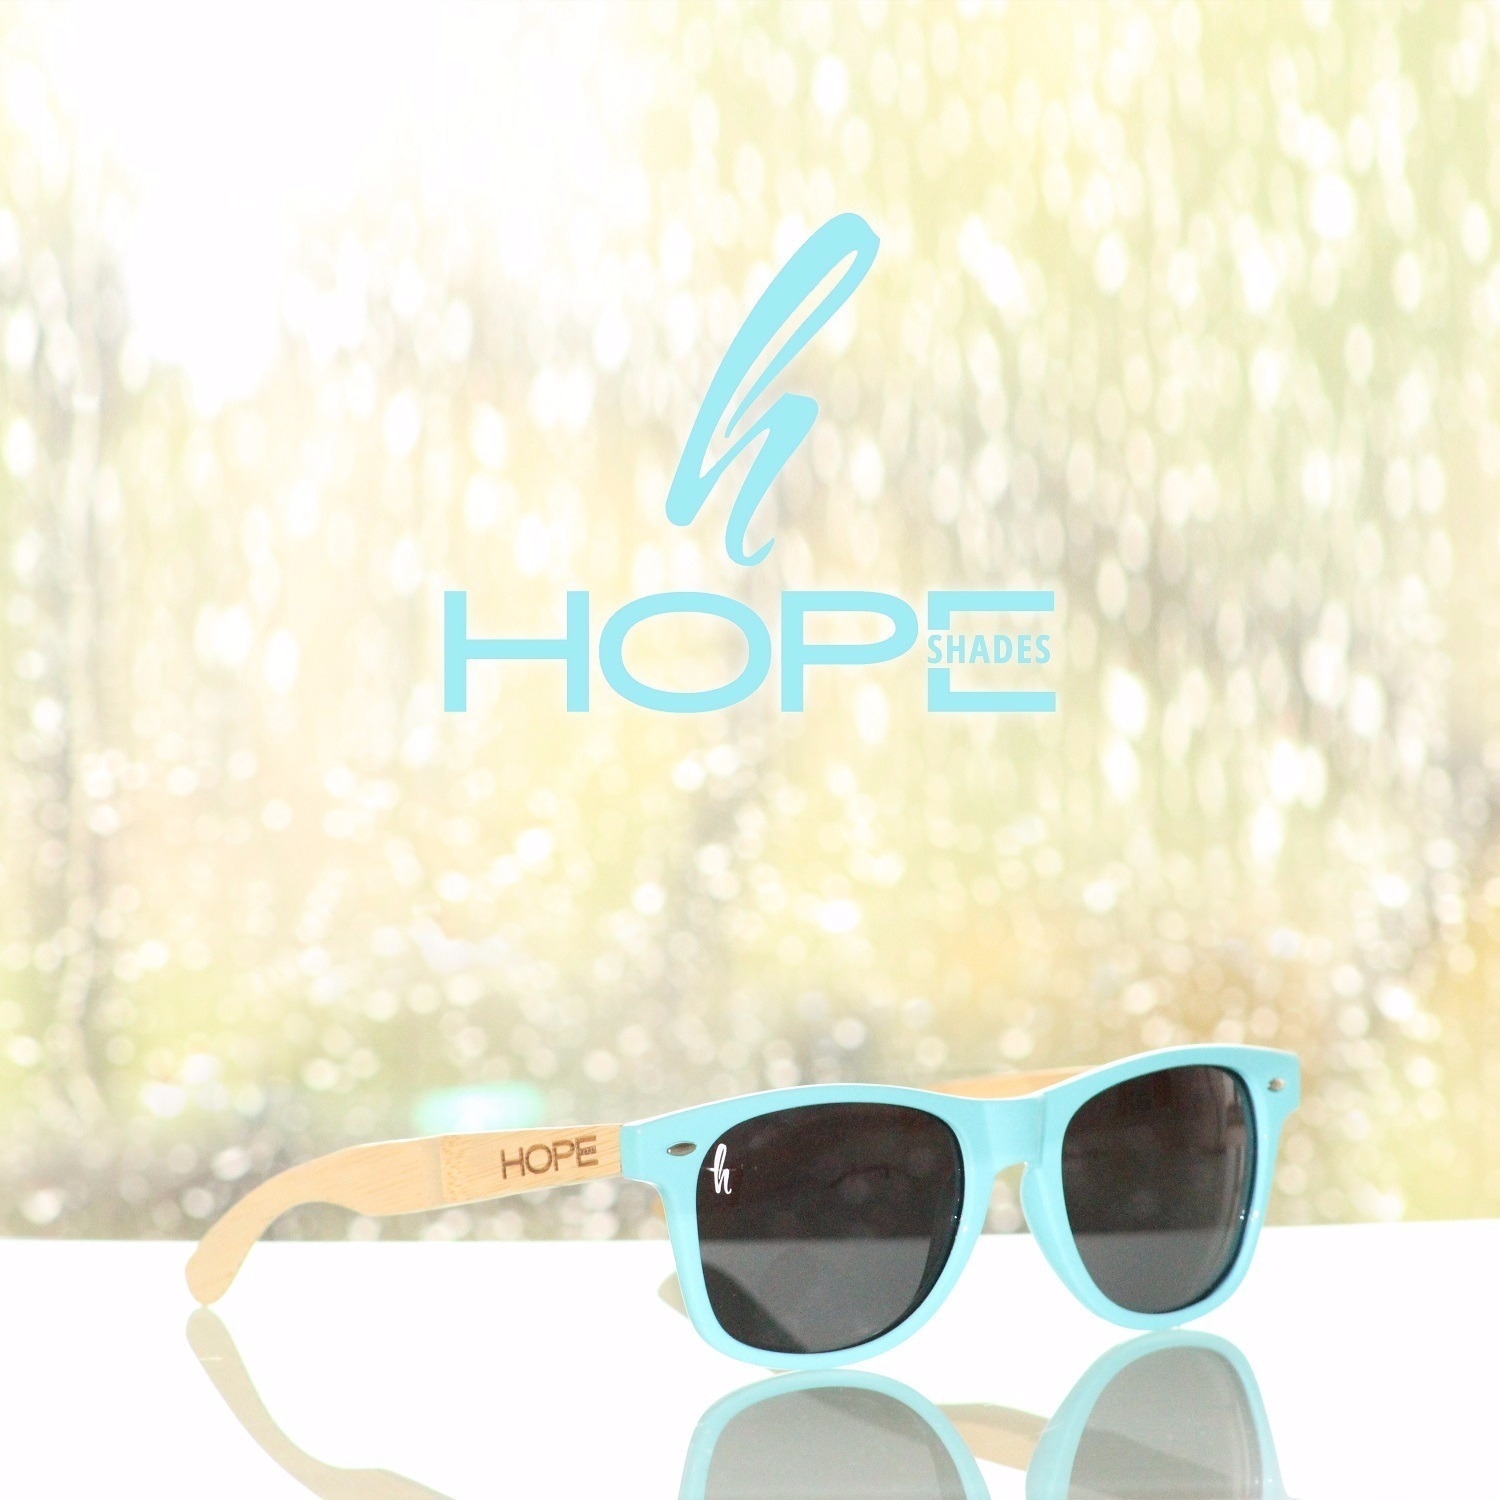 hope-shades-logo